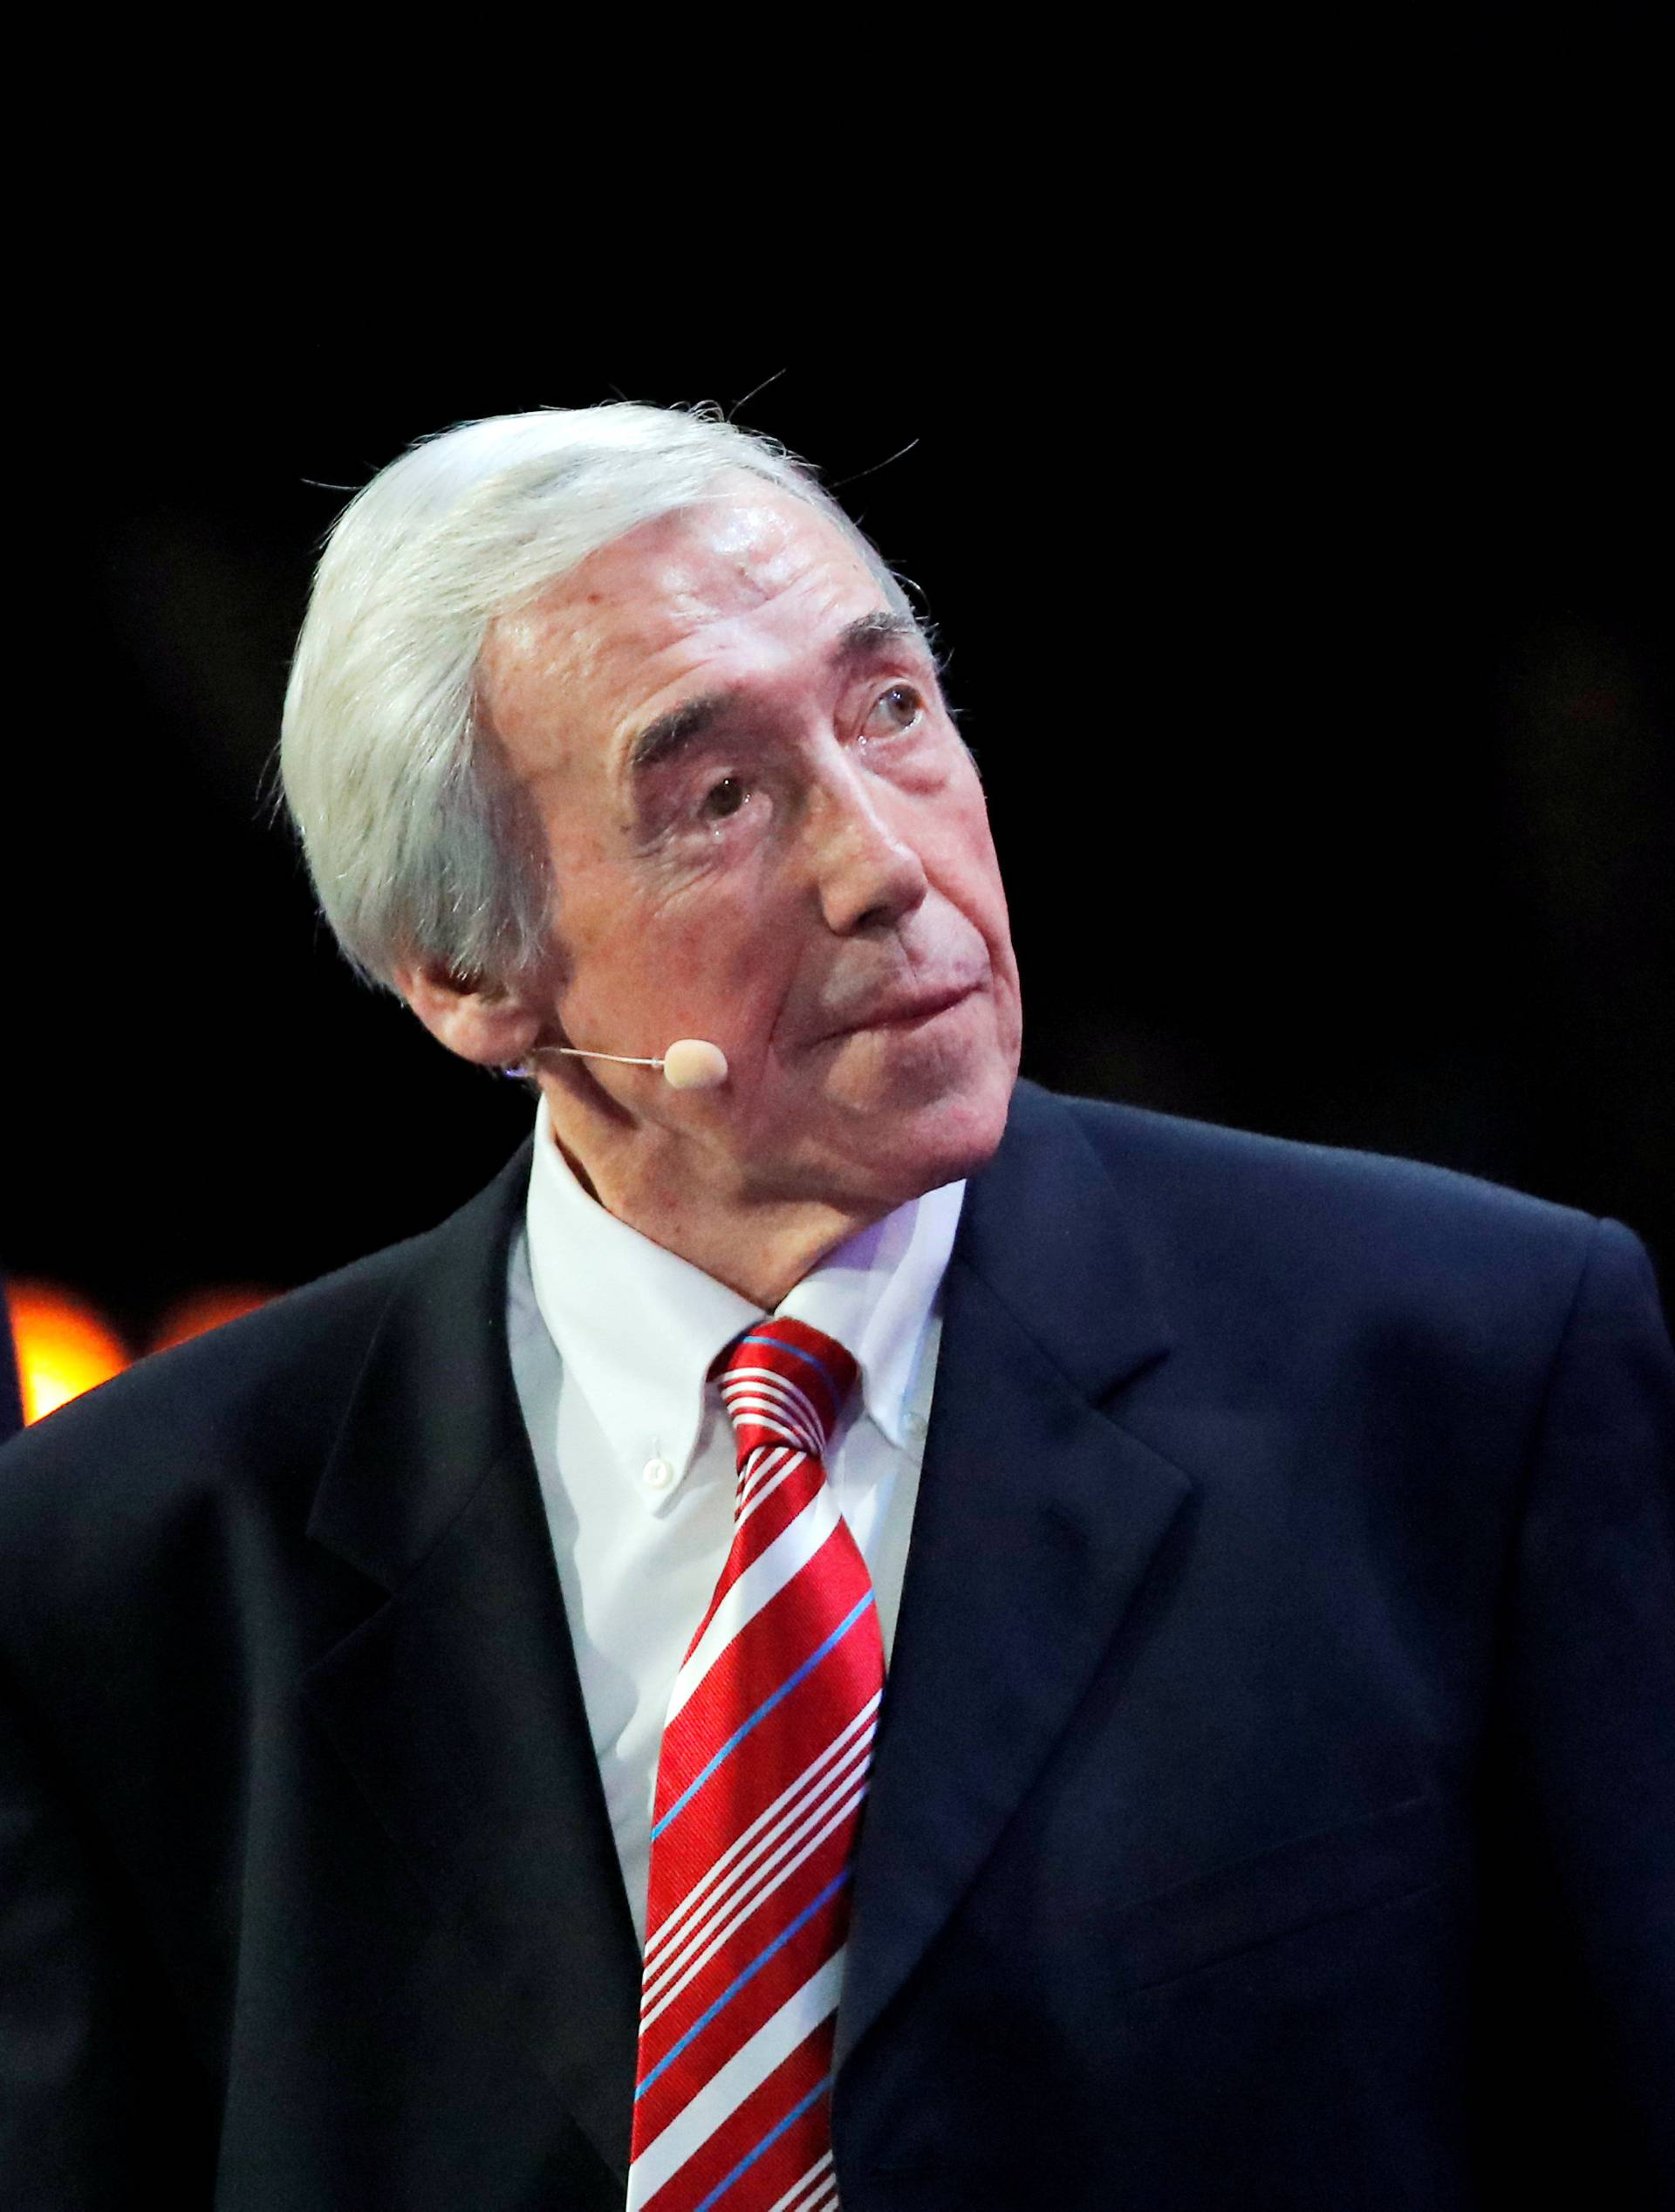 FILE PHOTO: Gordon Banks during the 2018 FIFA World Cup Draw at State Kremlin Palace